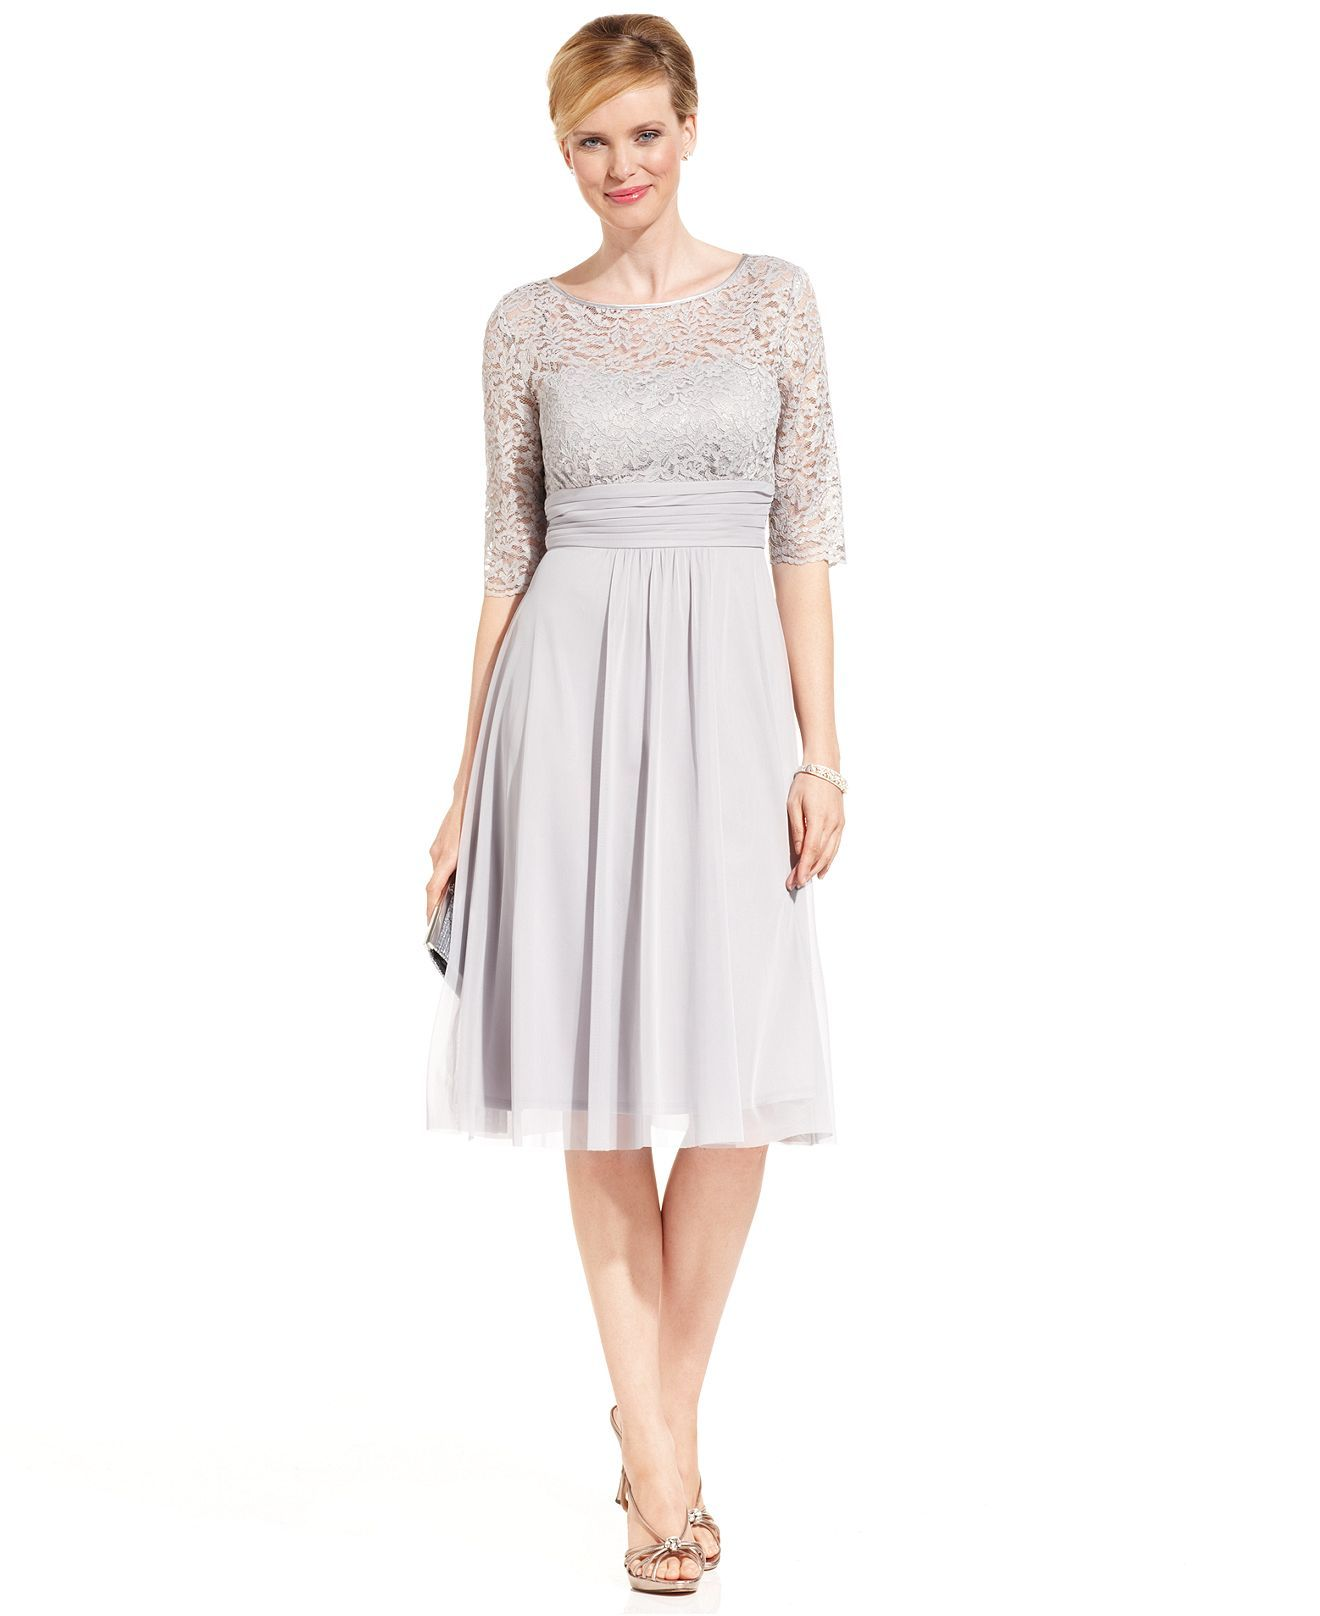 Stunning Mother Of The Bride Dresses: Jessica Howard Dress, Short-Sleeve Lace Pleated